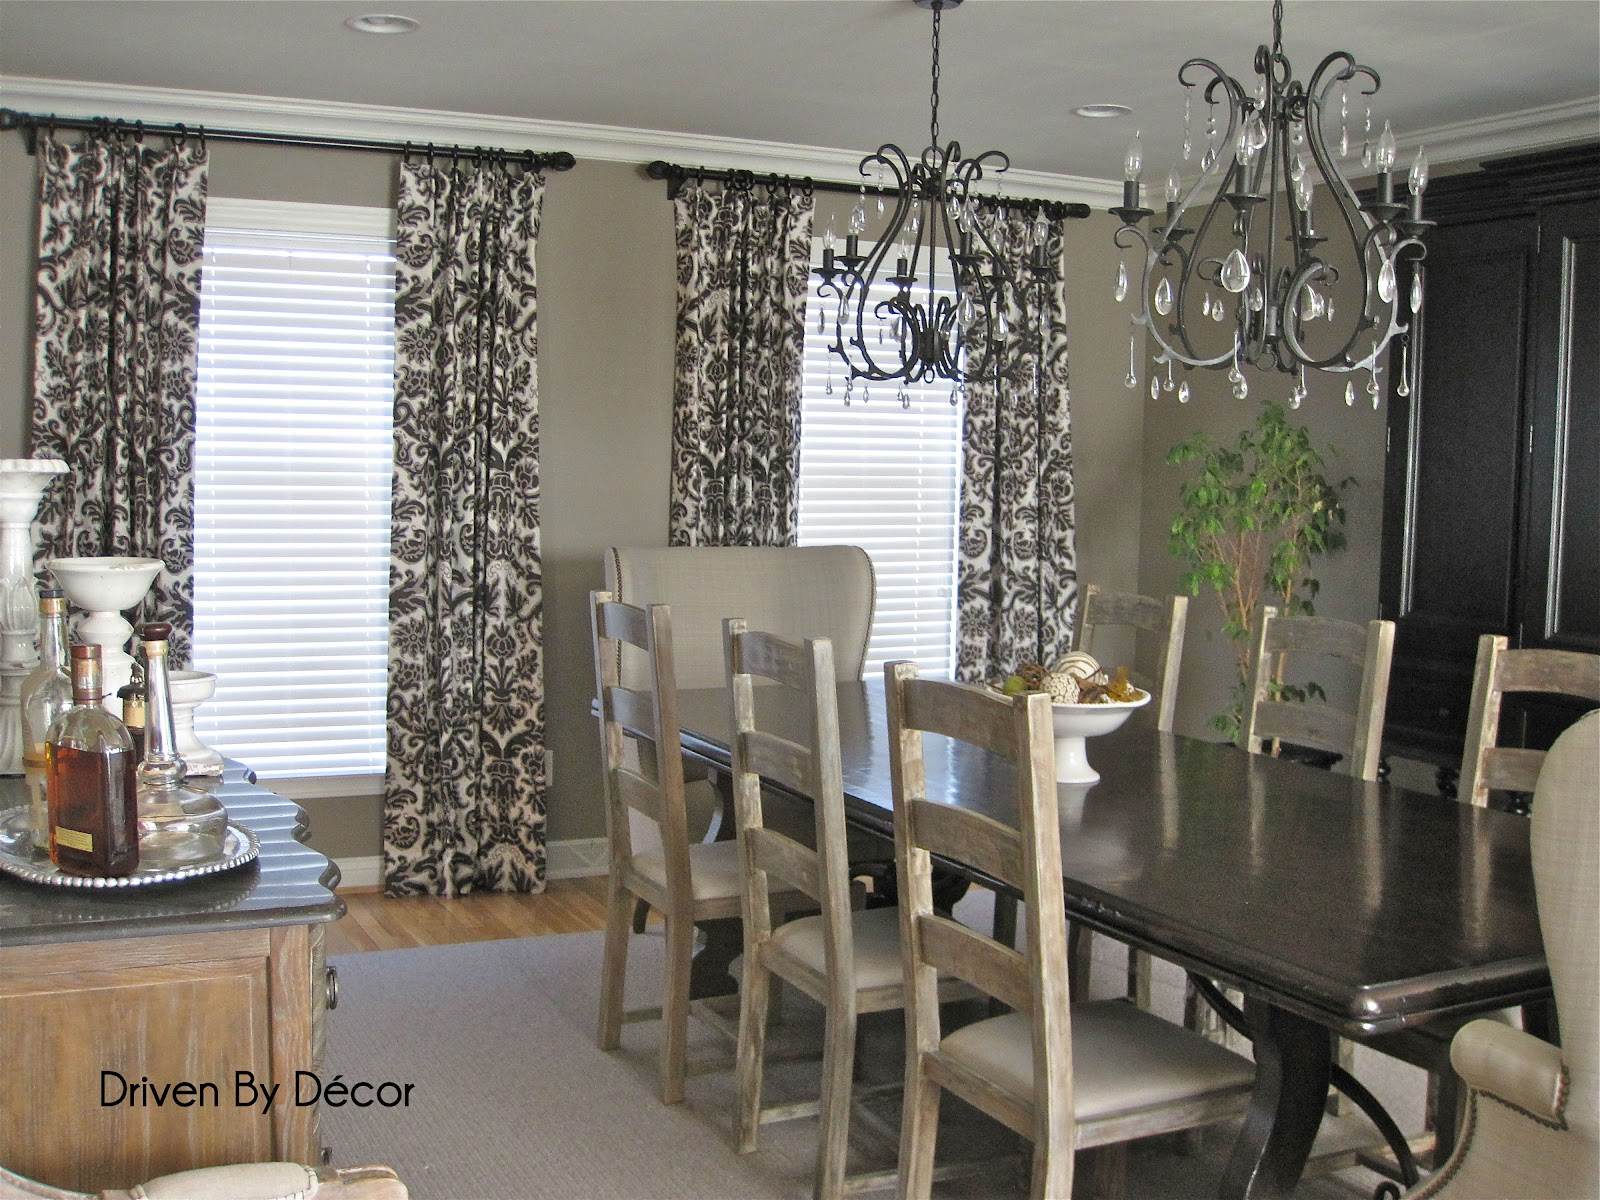 Walmart Tension Rods For Curtains Drapes for Gray Walls